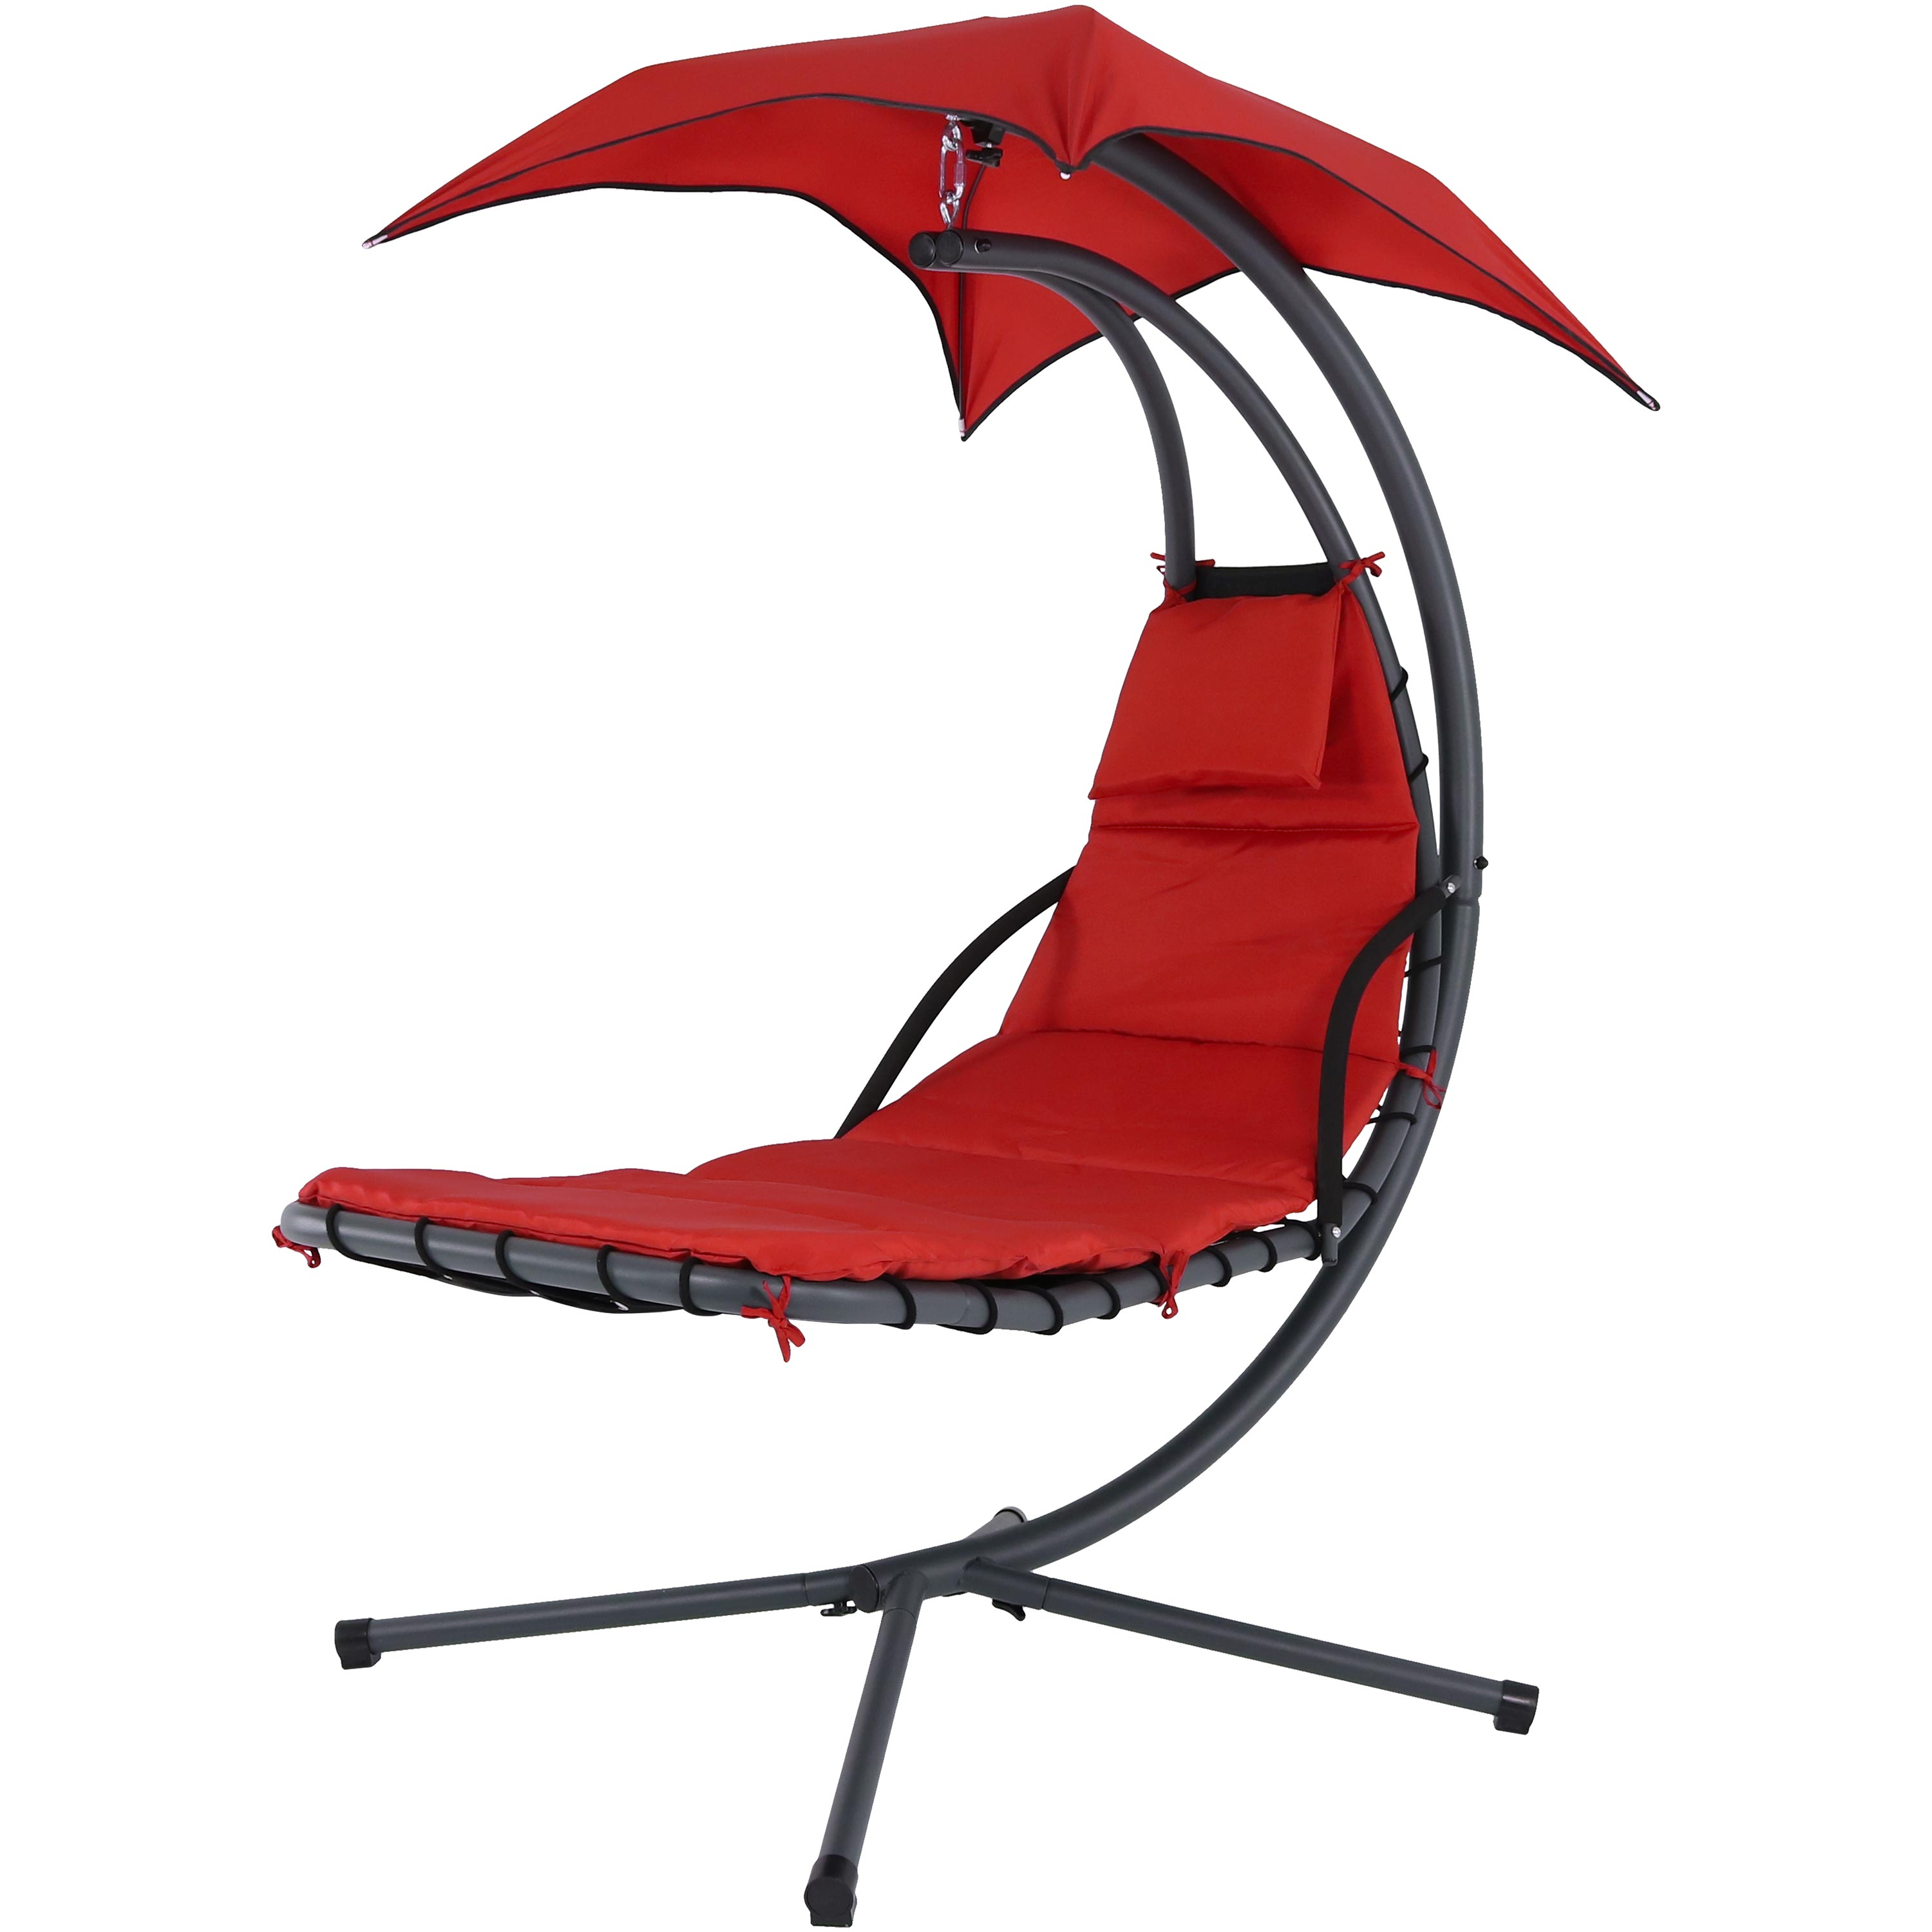 Red Floating Chaise Lounger Swing Chair Canopy Umbrella Wide Tall Photo